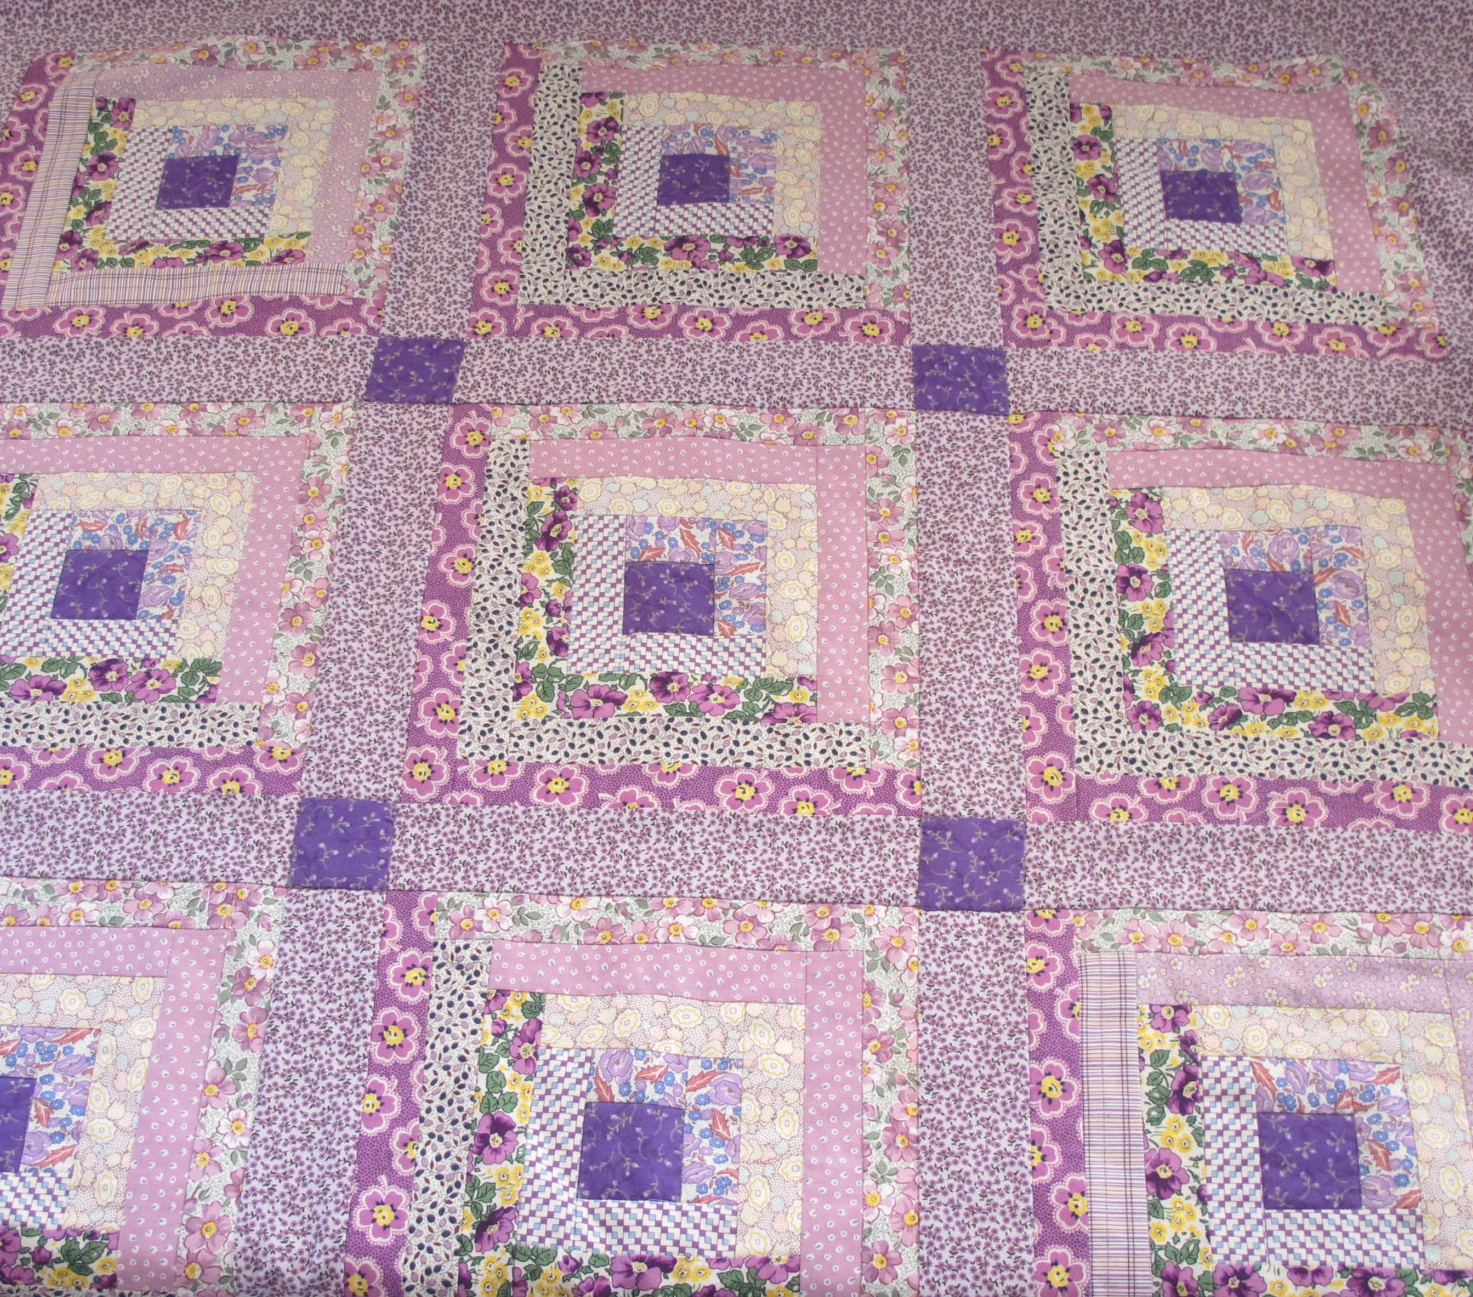 Sentimental Baby: Log Cabin Quilt and 1930s Reproduction Fabric